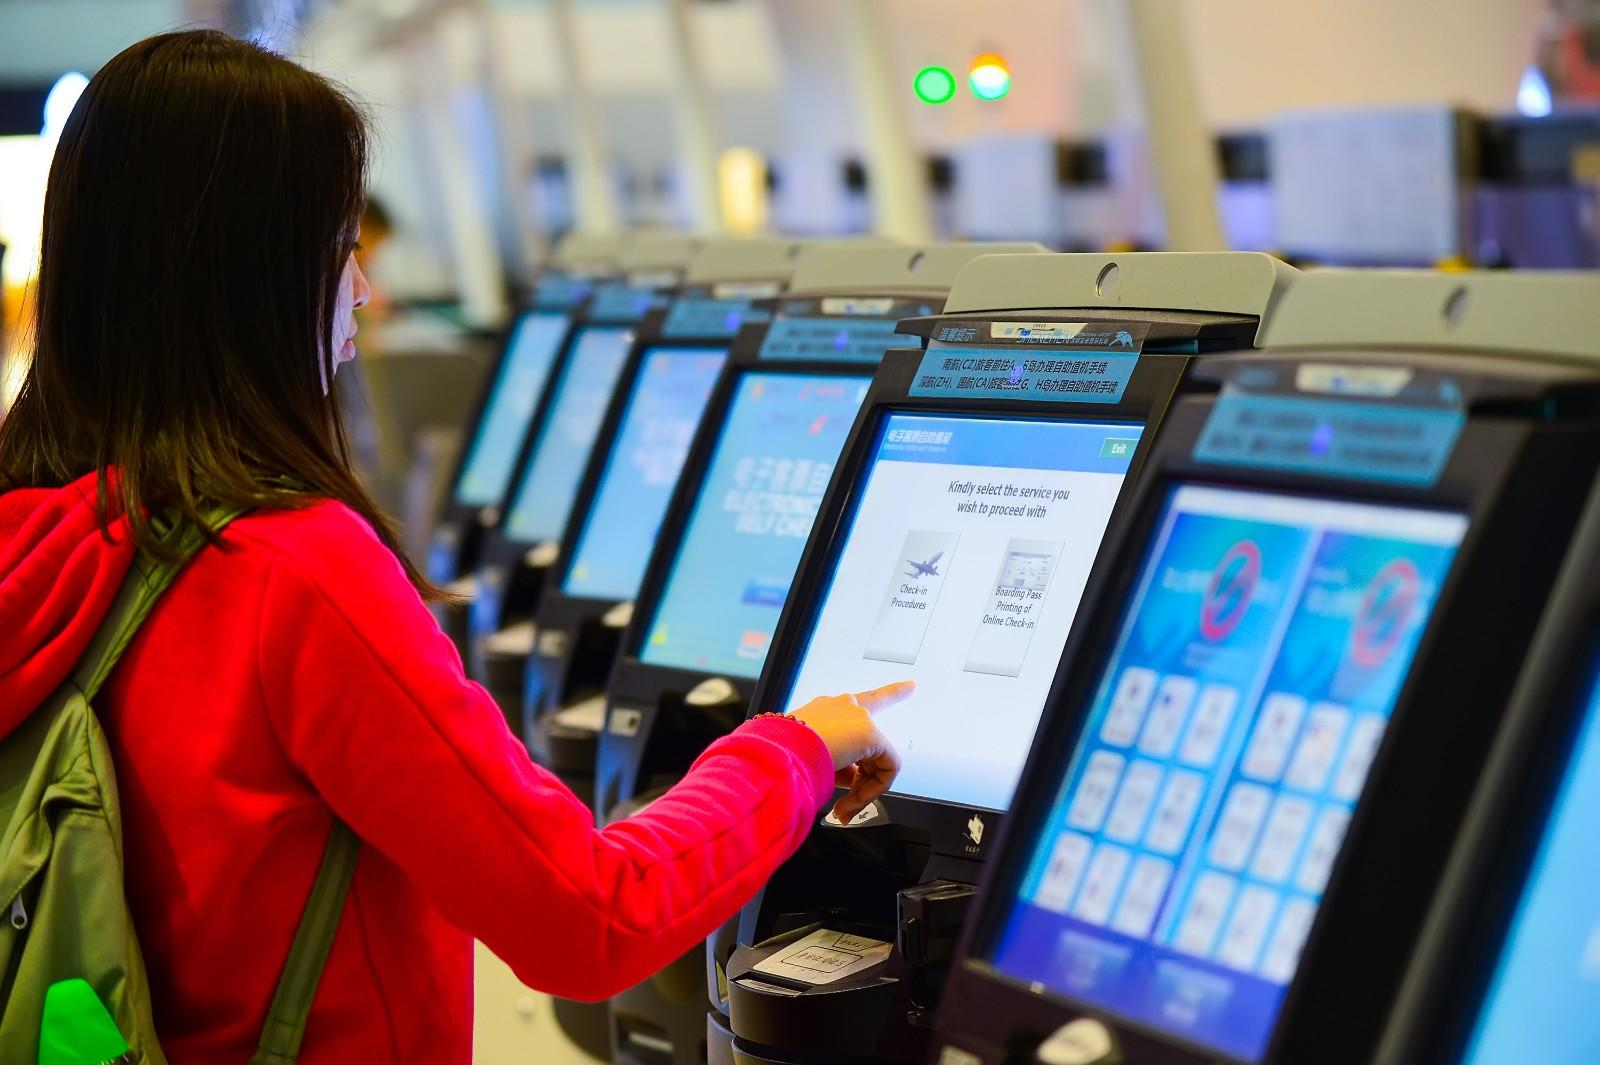 Hongzhou information kiosk machine appearance in airport-1